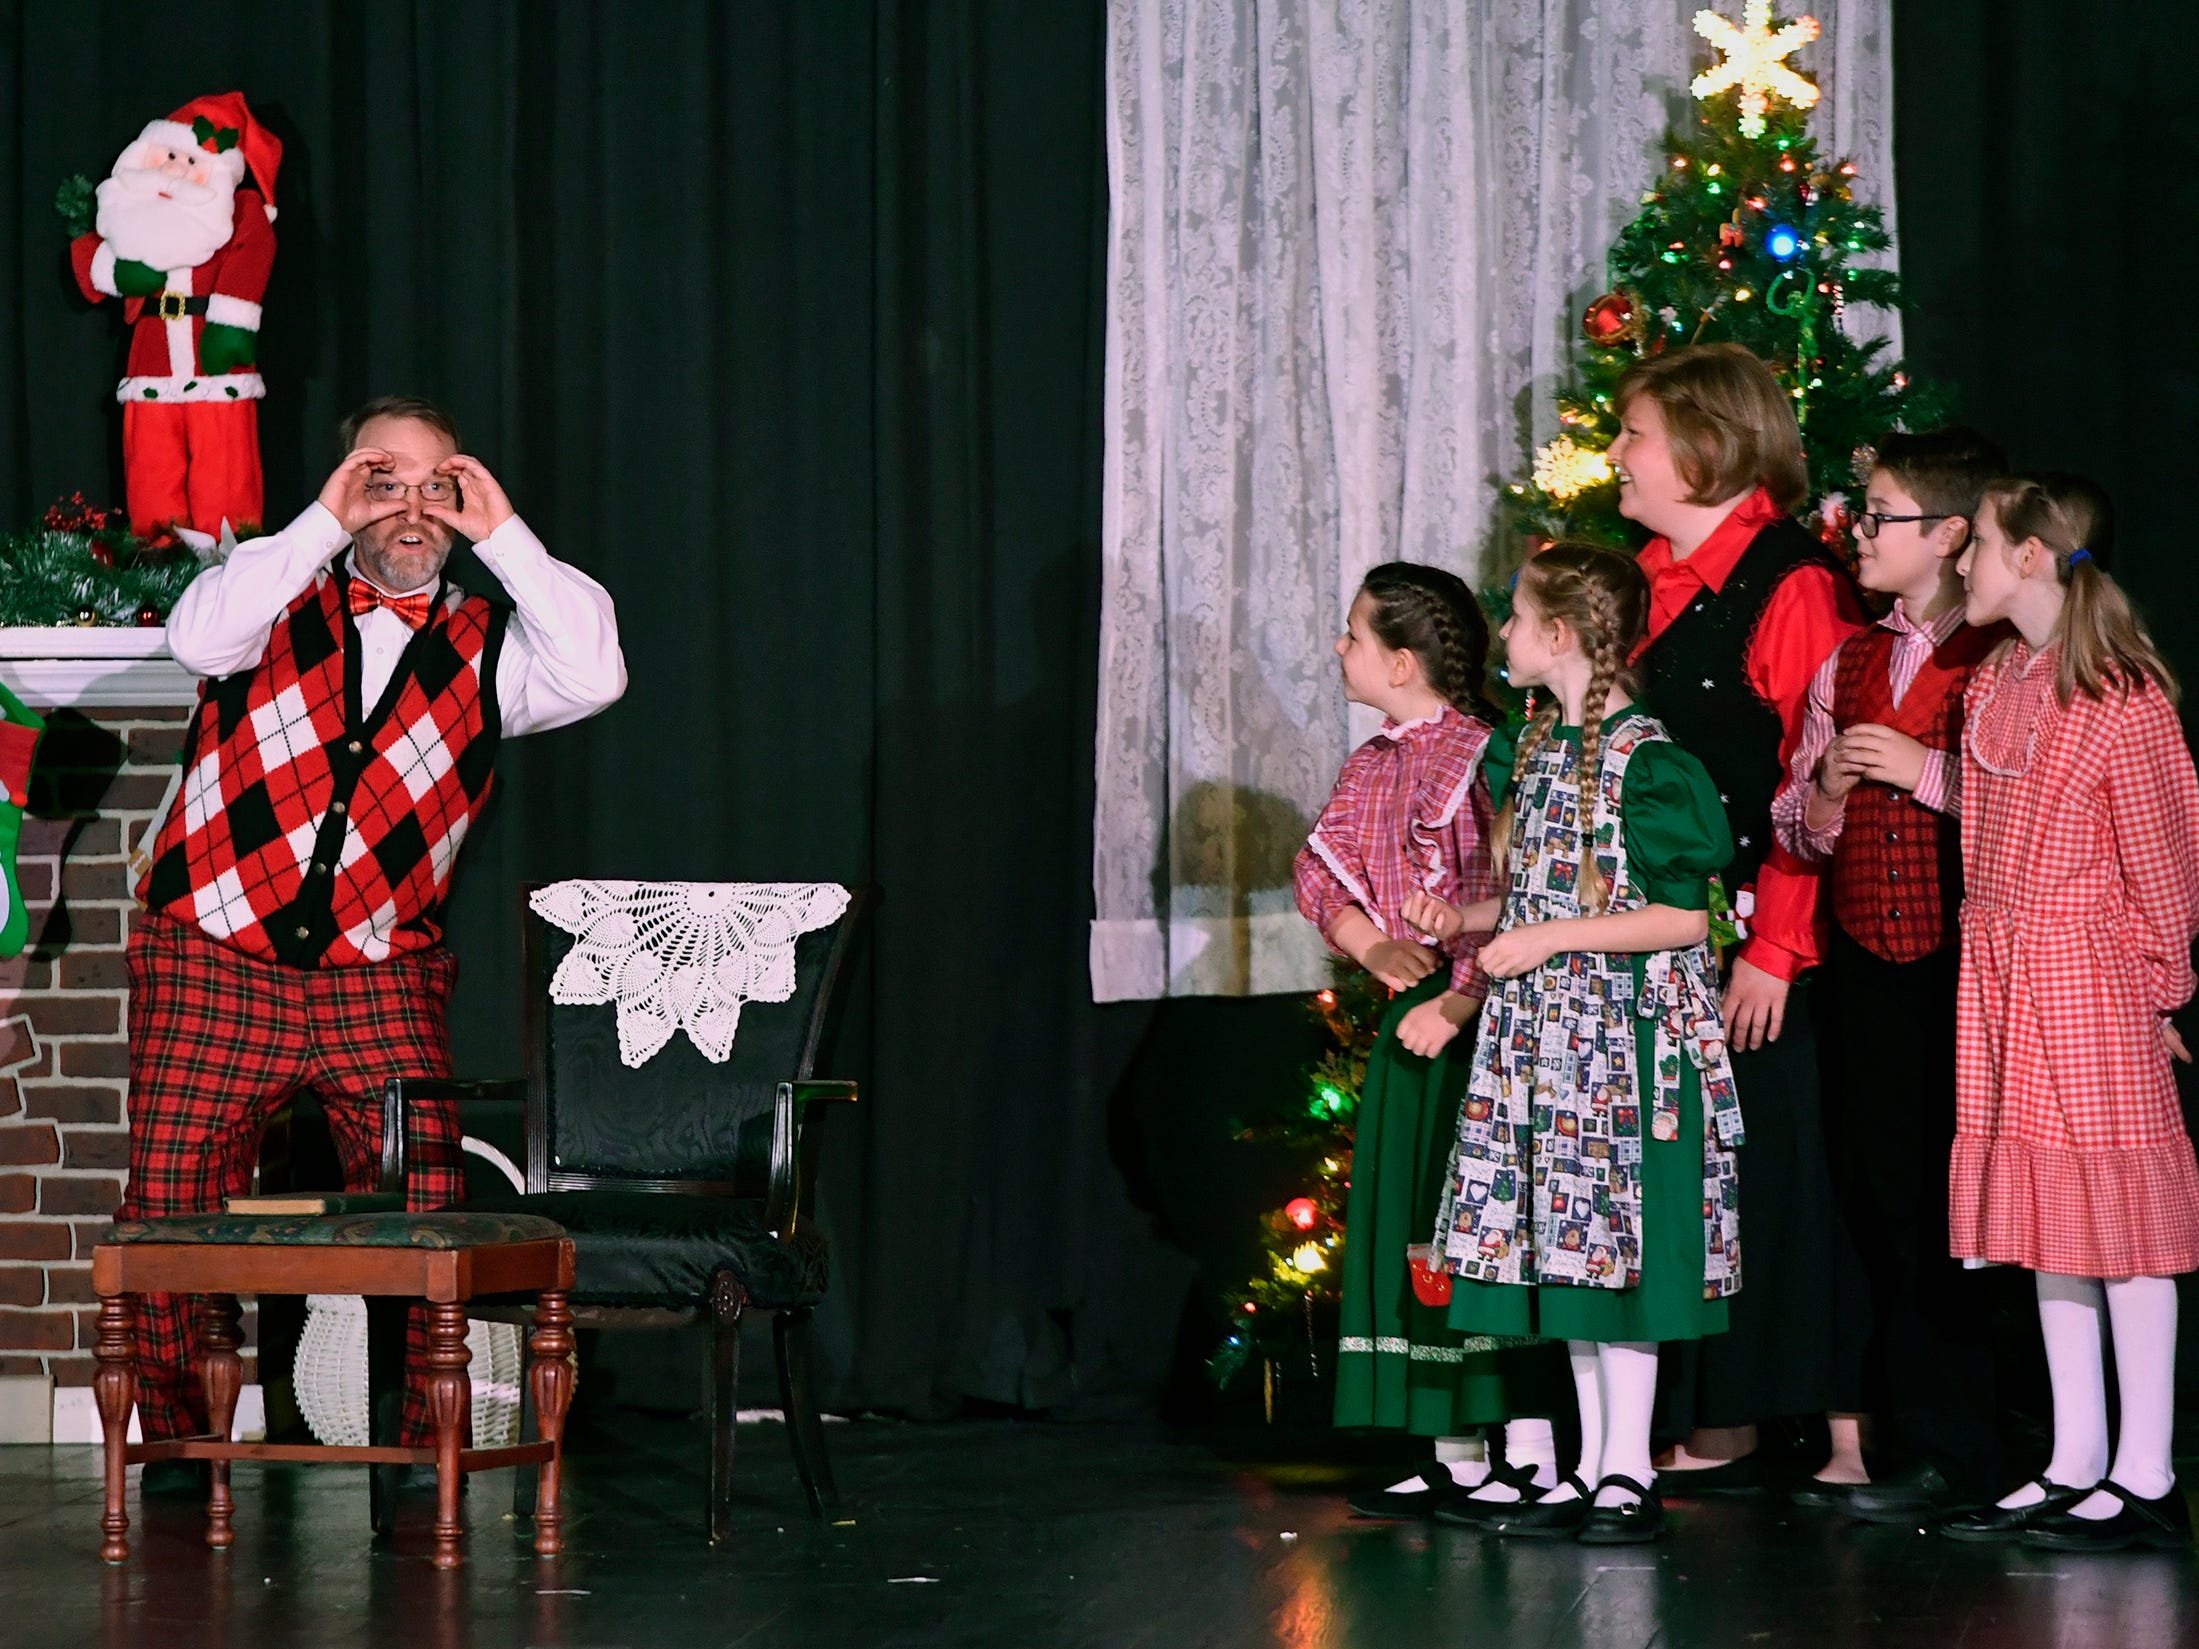 """Bob Arvin, left, portraying a father, and his stage family sing """"Rudolph the Red-Nosed Reindeer"""" during a dress rehearsal for the Theater Arts for Everyone performance of """"The Night Before Christmas."""" Show times are Dec. 7 and 8 at 7 p.m. and Dec 8 and 9 at 3 p.m.  at the York Learning Center. Tickets are available at the door or through Eventbrite. Thursday, December 6, 2018.  John A. Pavoncello photo"""